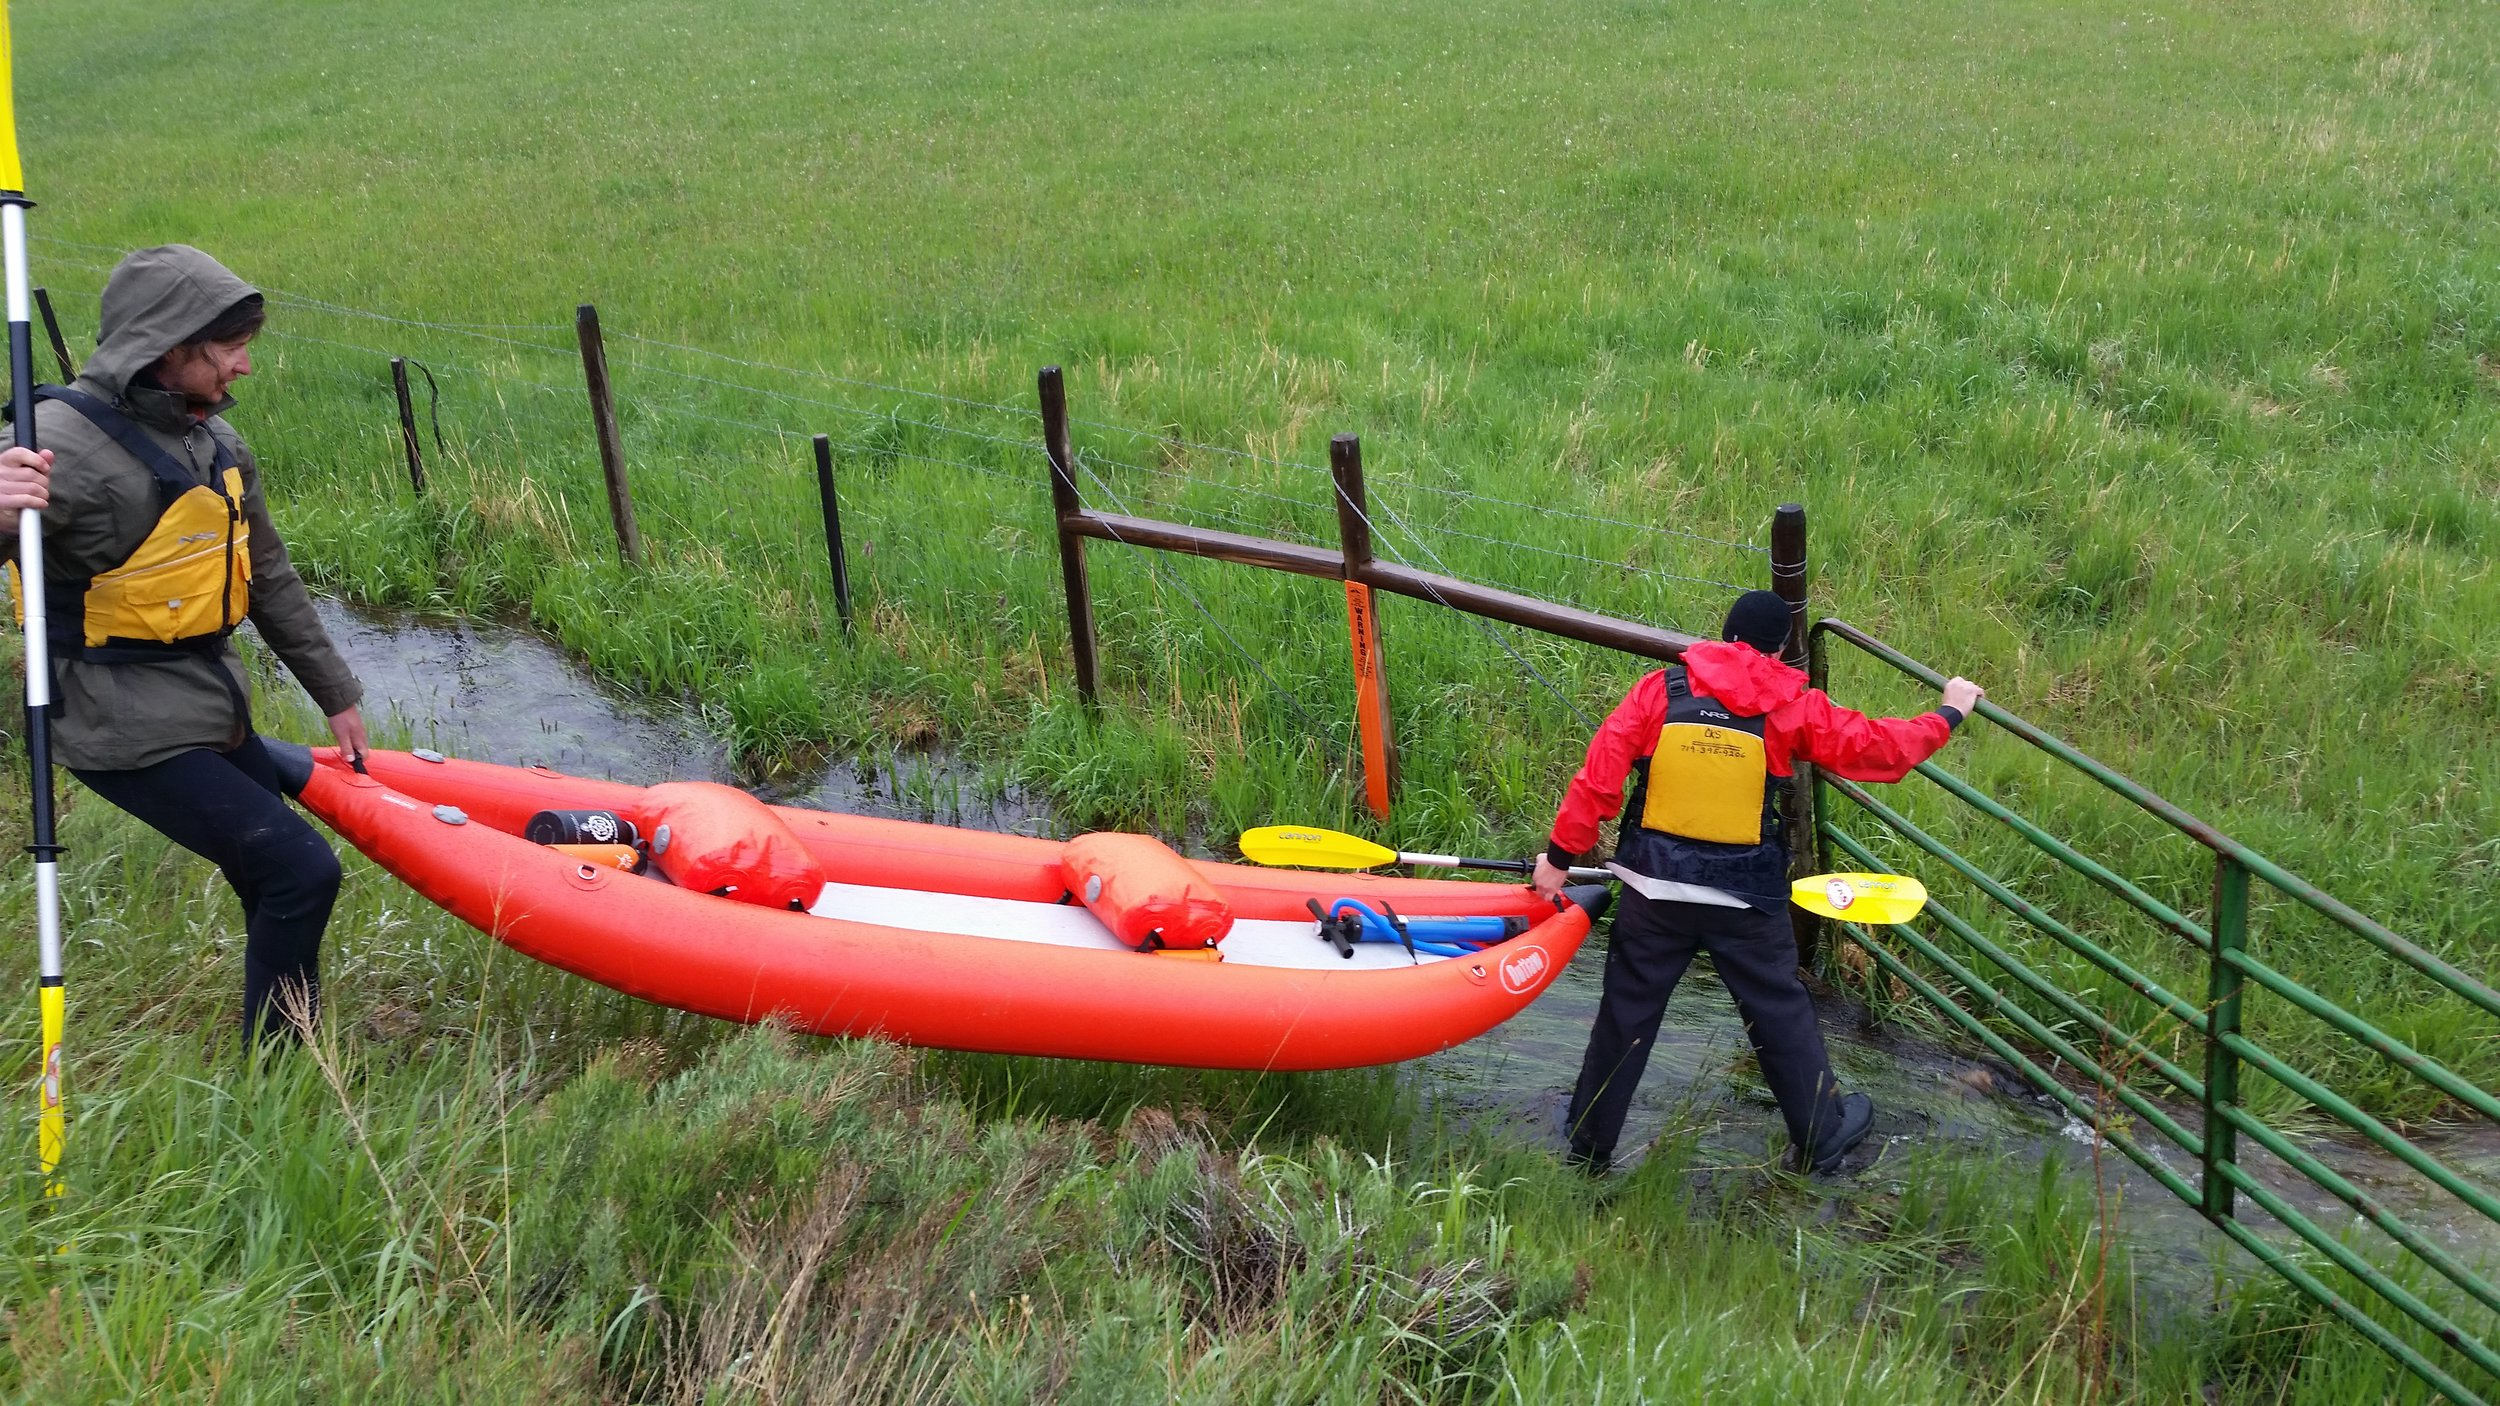 Lincoln and John load an inflatable kayak over a barbed-wire fence, shortly before loading into the Little Snake River in southern Wyoming. [Photo: Damien Willis]